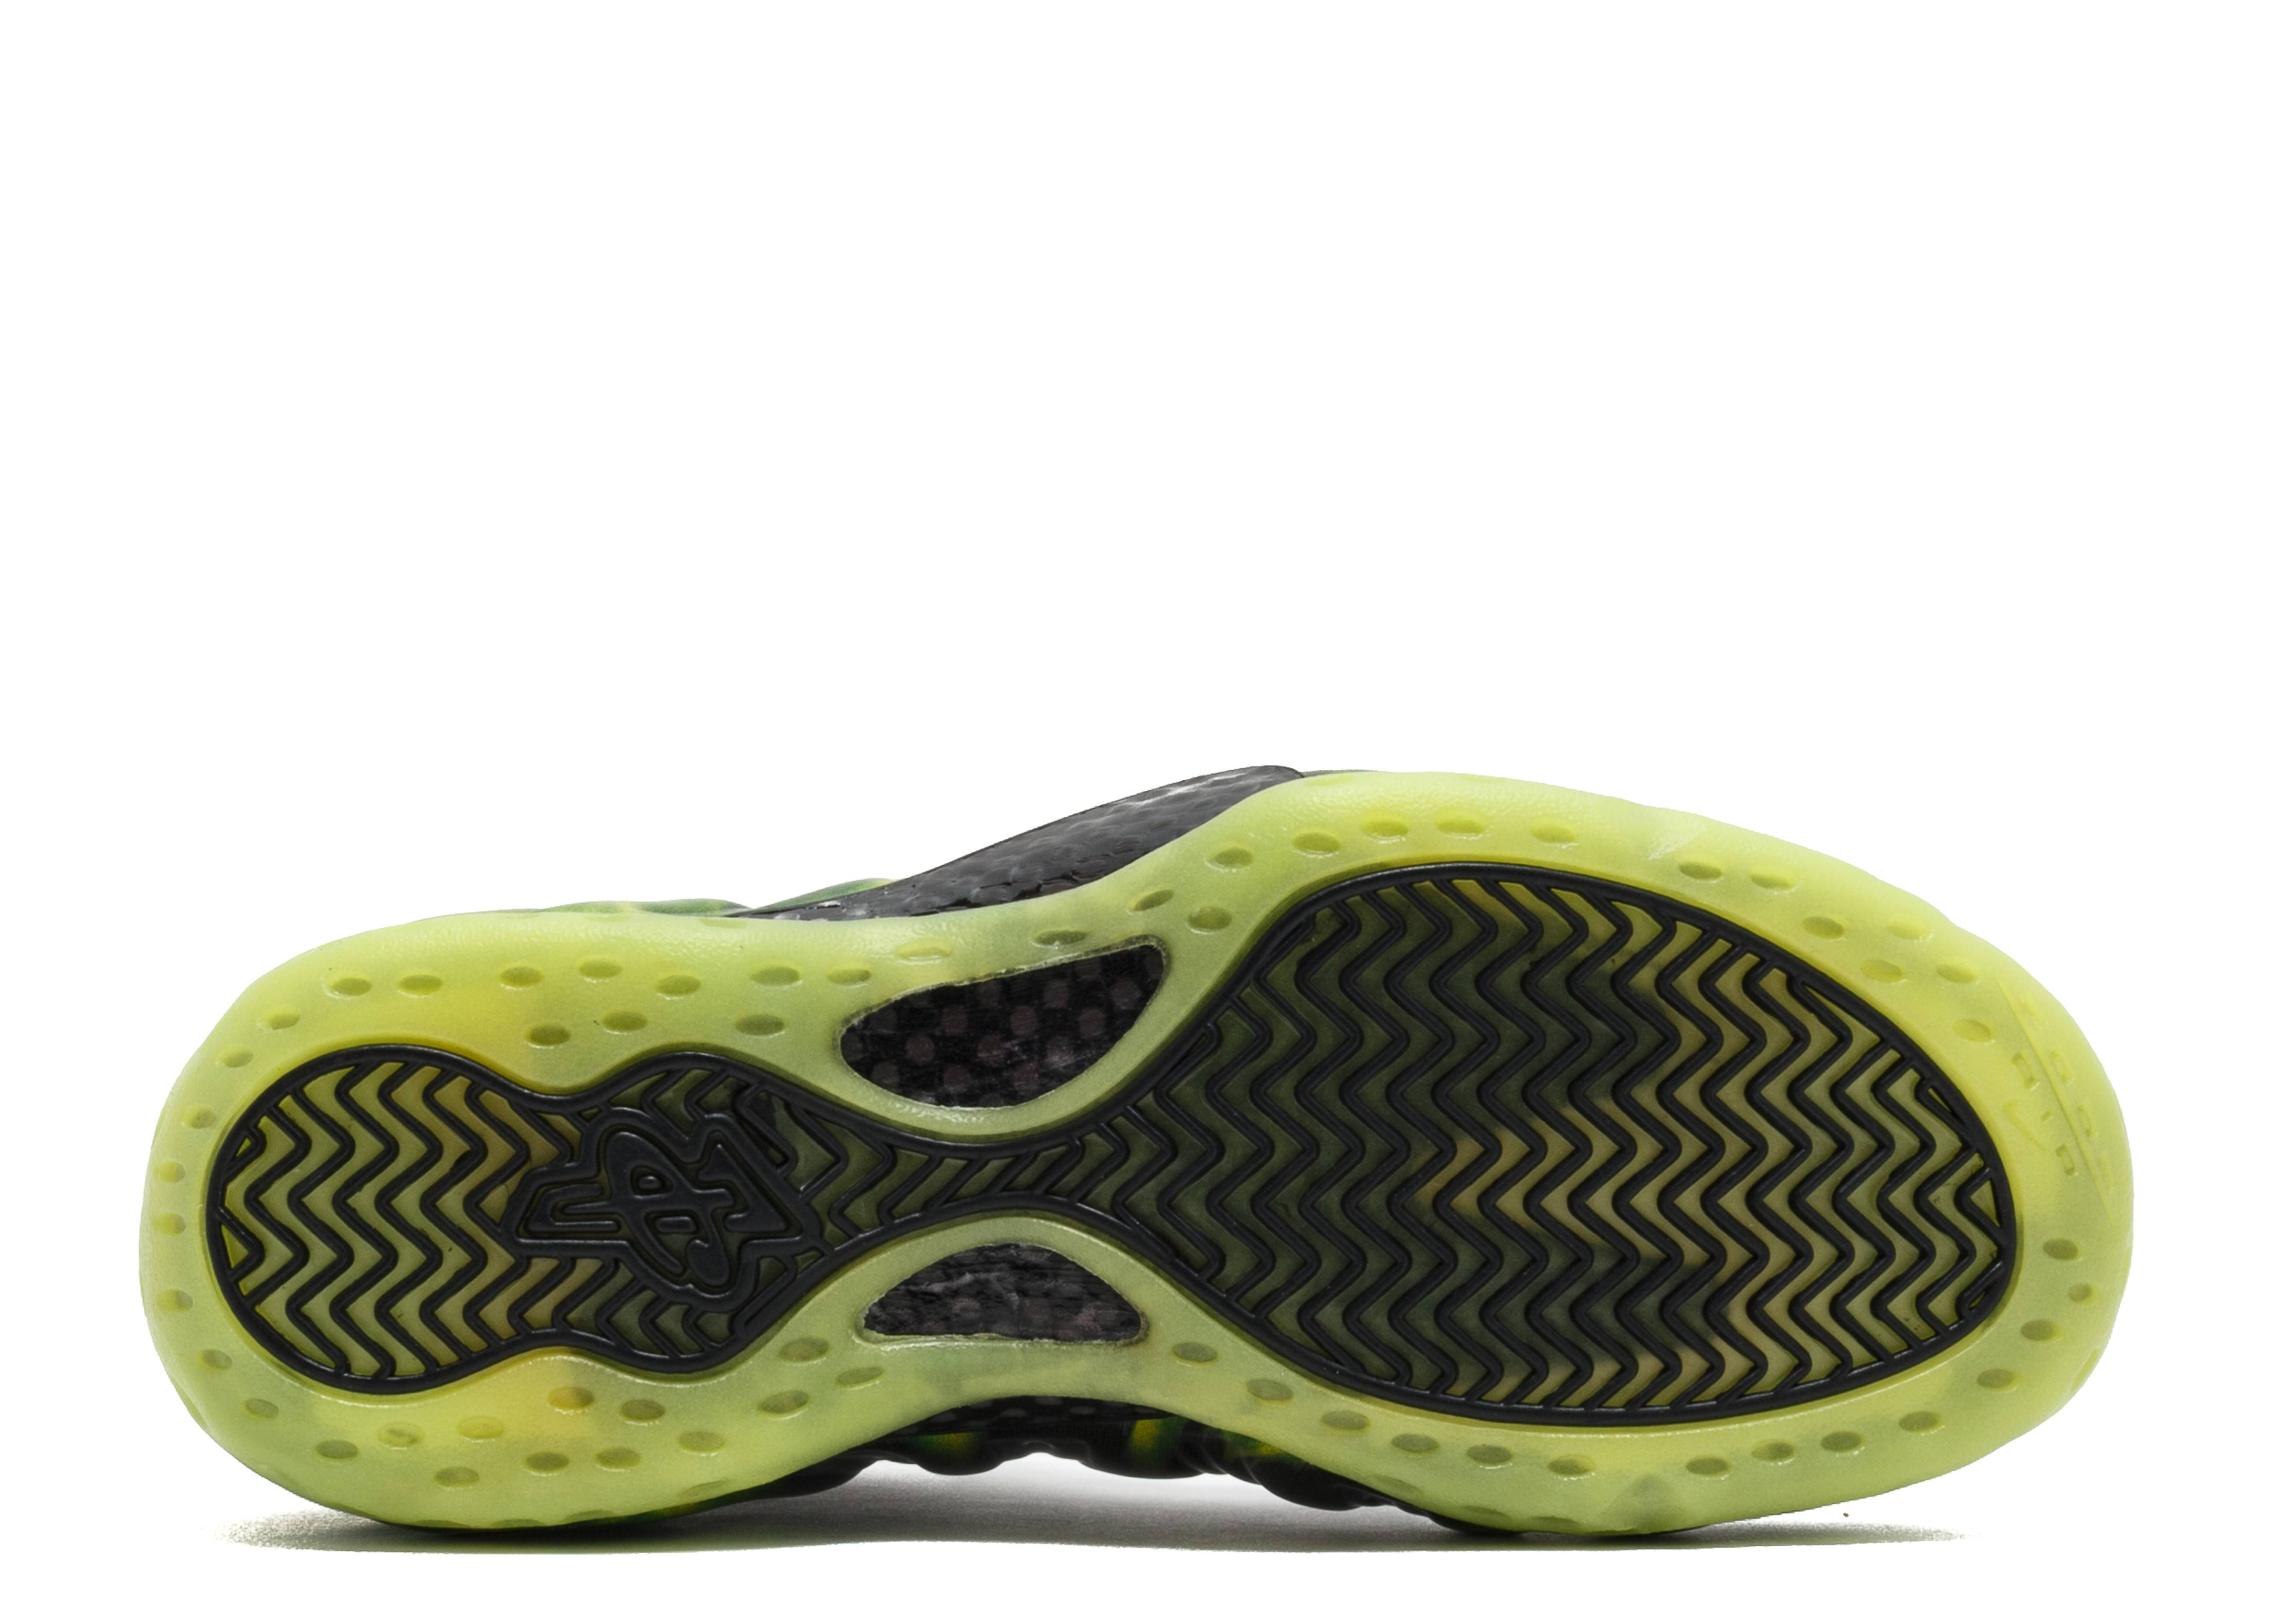 84c7c0f39f3 Air Foamposite One Paranorman